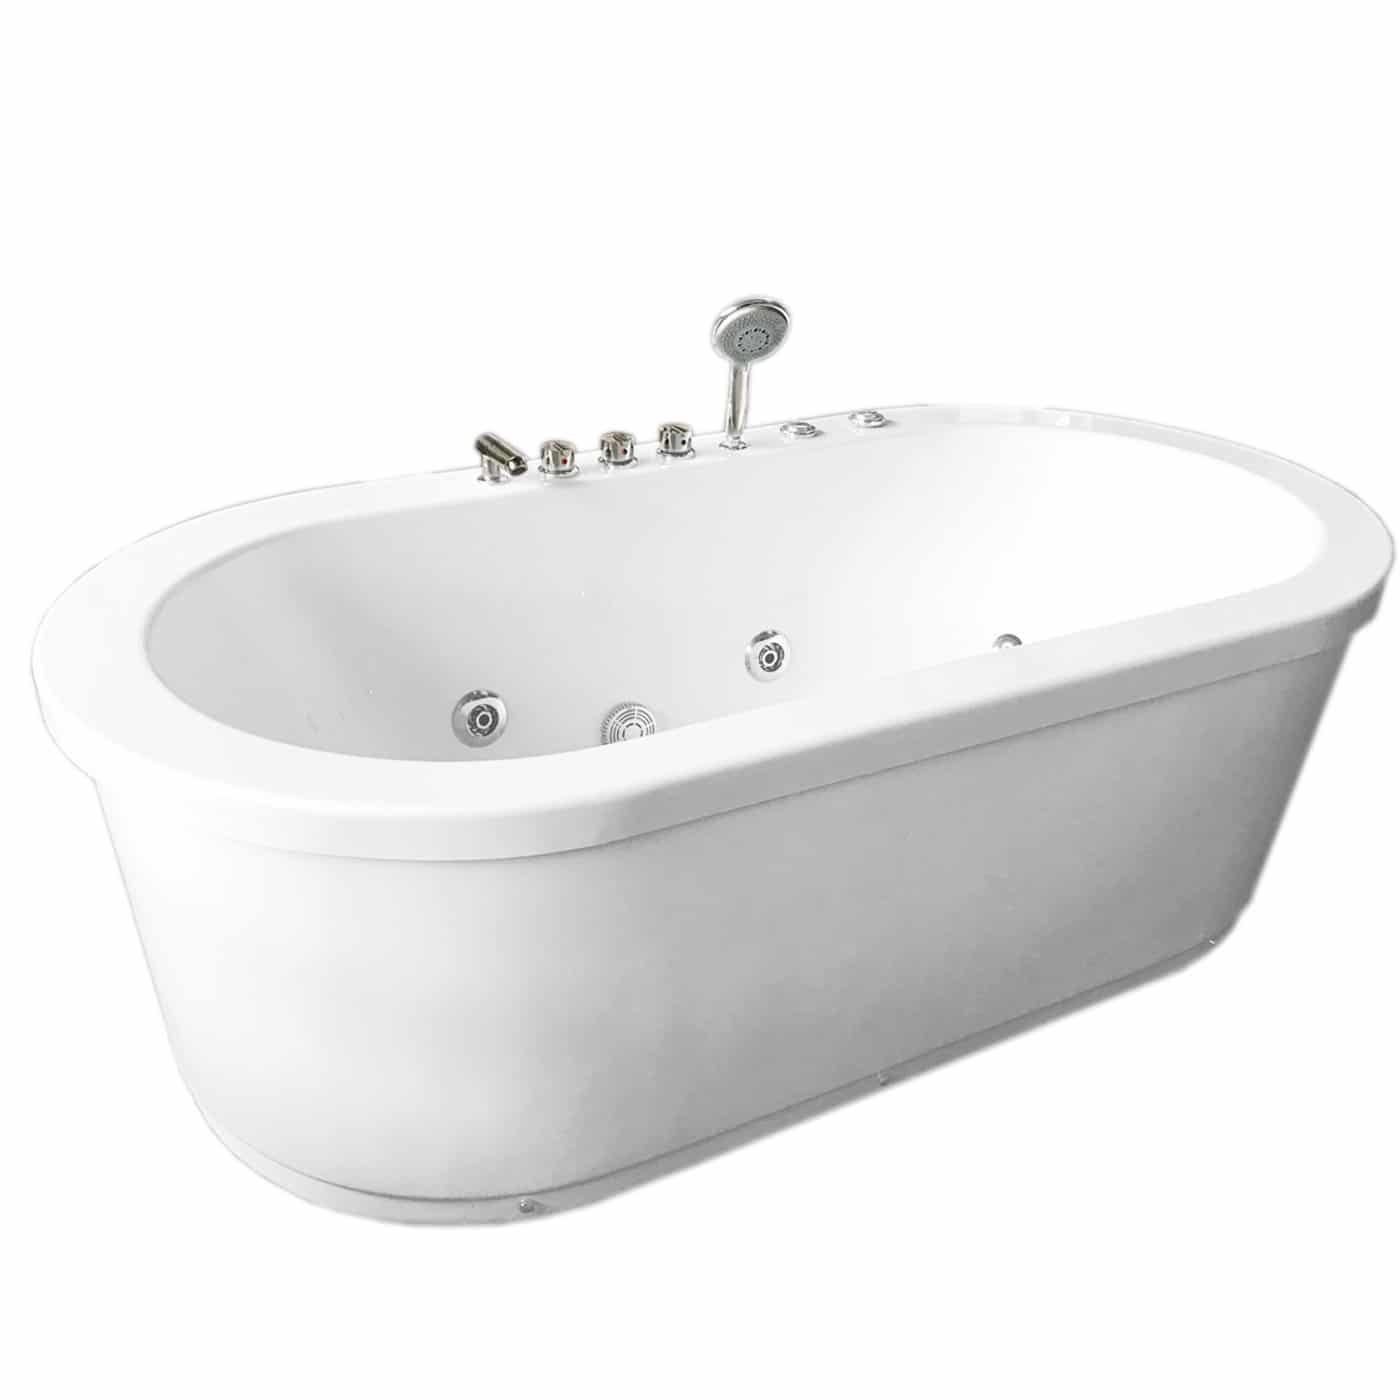 MCP Jetted Tubs Freestanding Hydrotherapy Bathtub_2